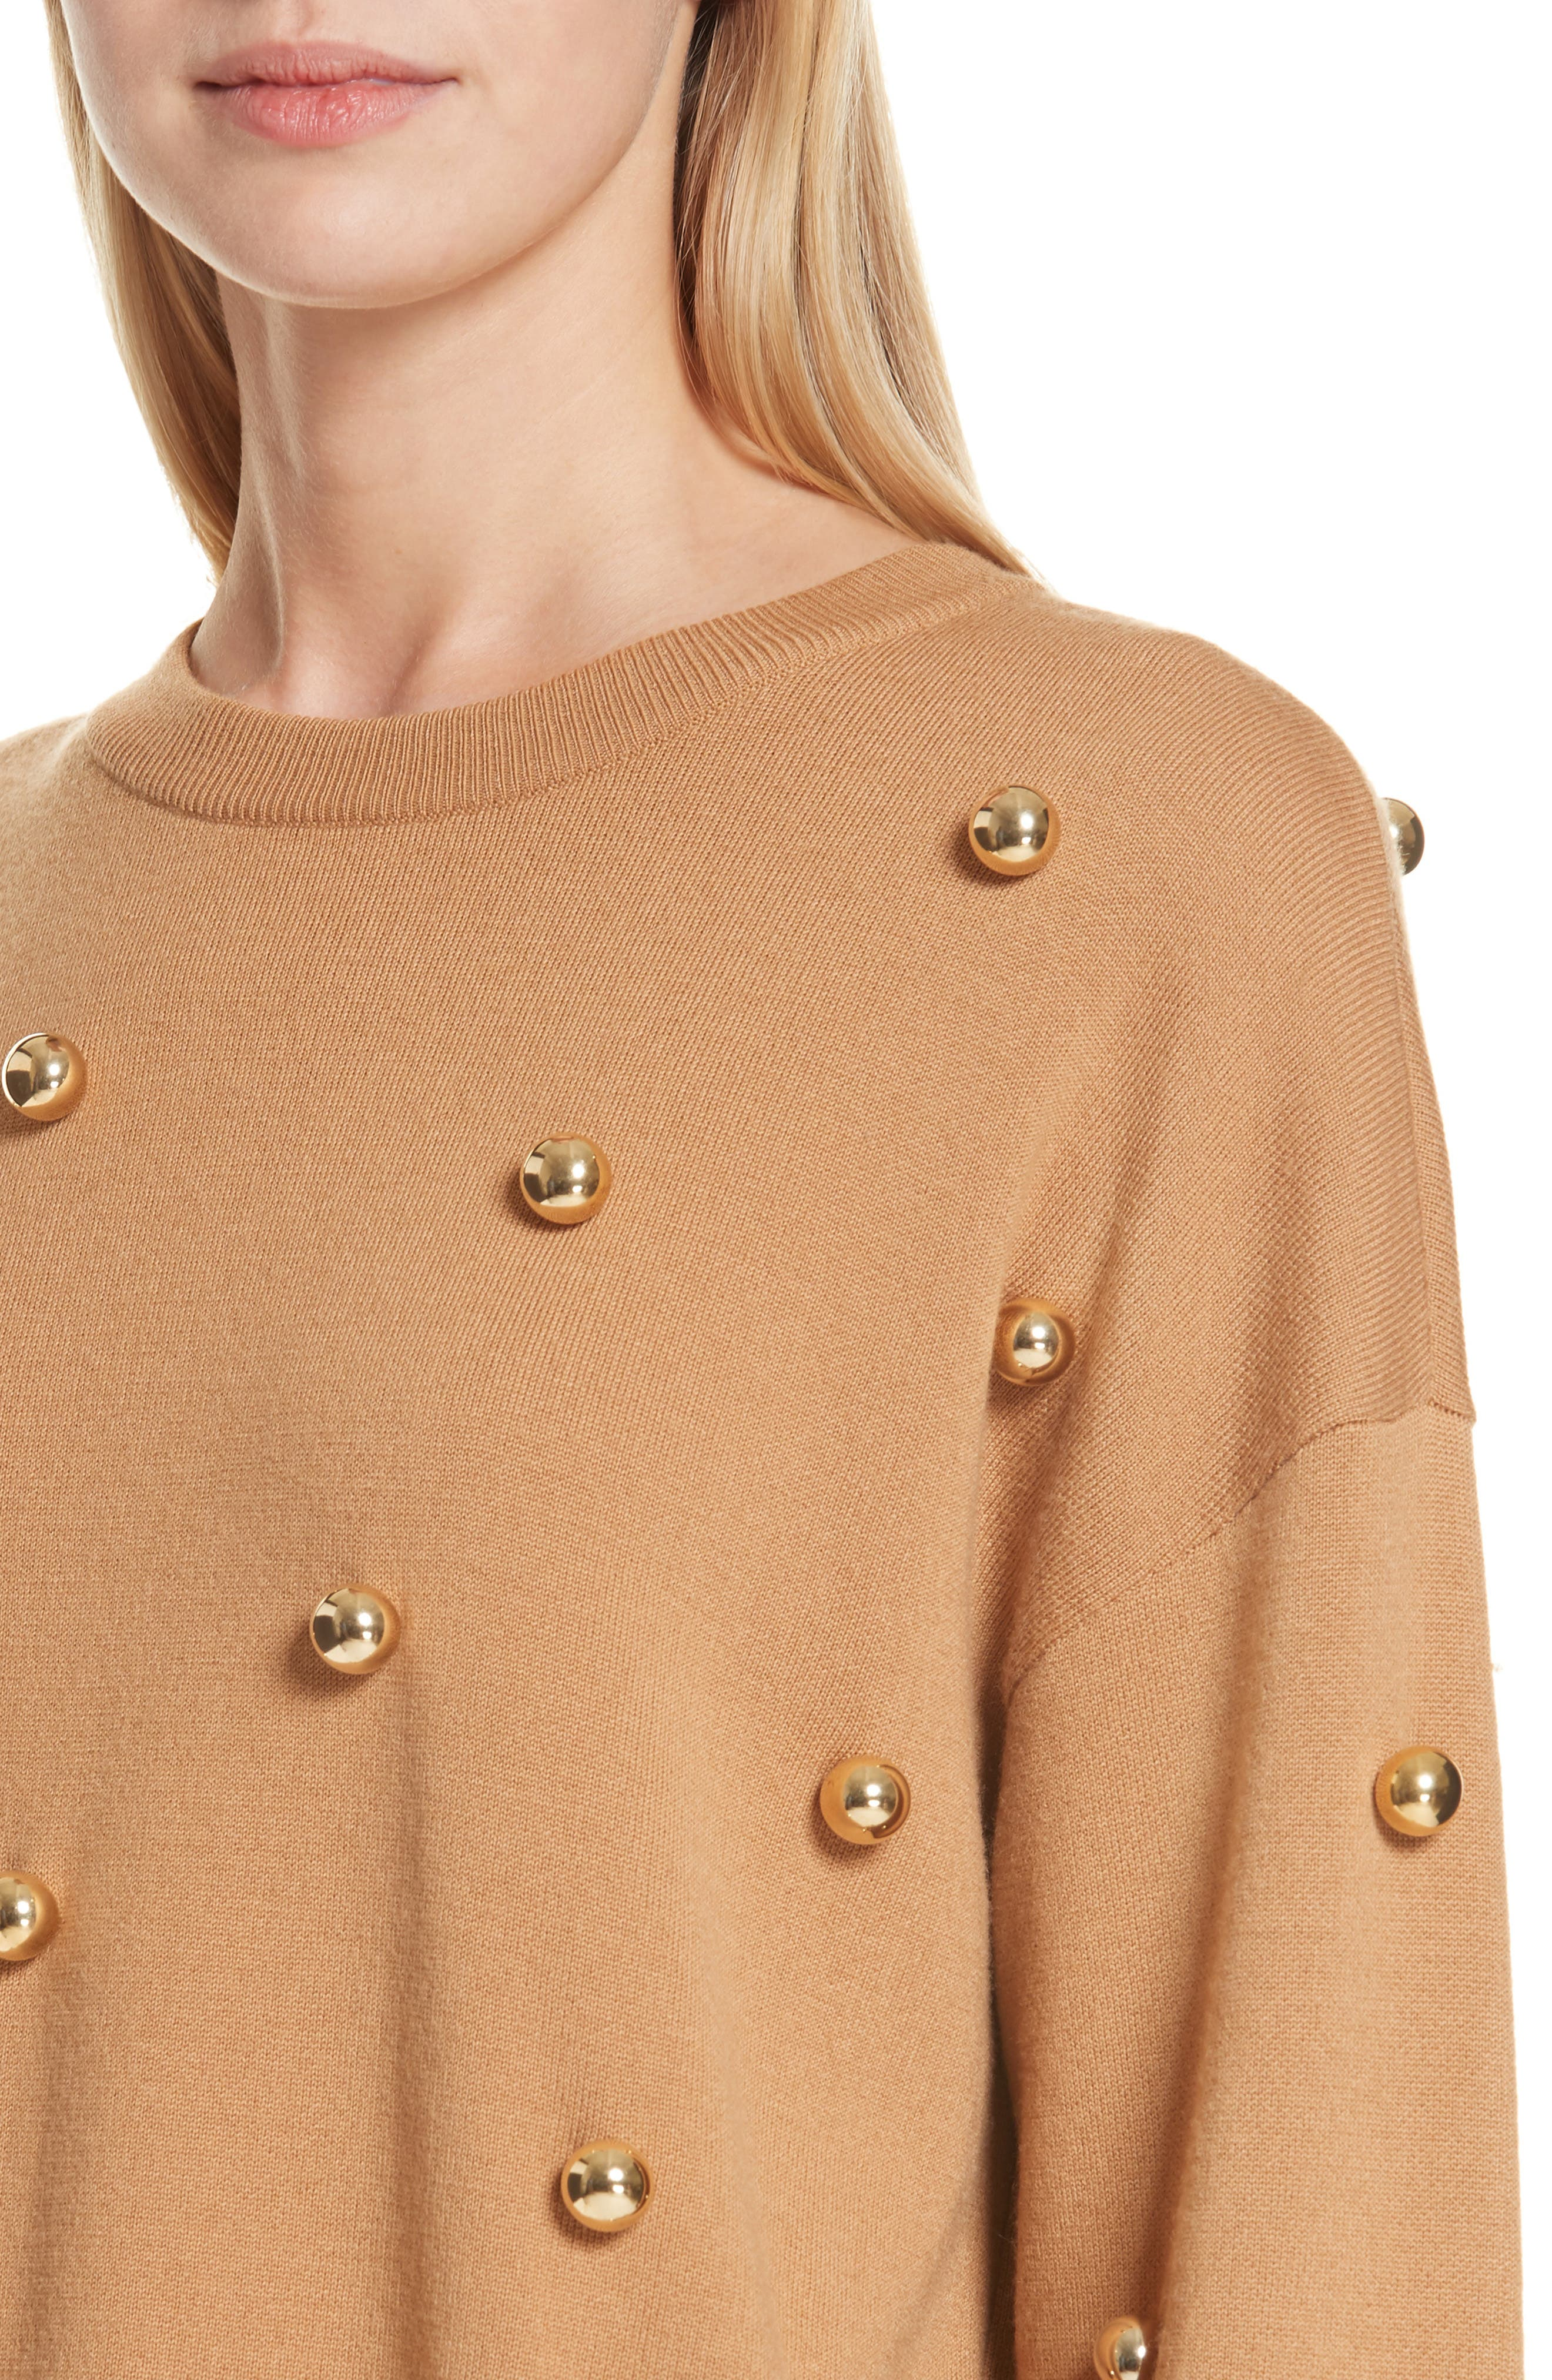 ALICE + OLIVIA, Gleeson Metal Ball Detail Wool Blend Sweater, Alternate thumbnail 4, color, 200